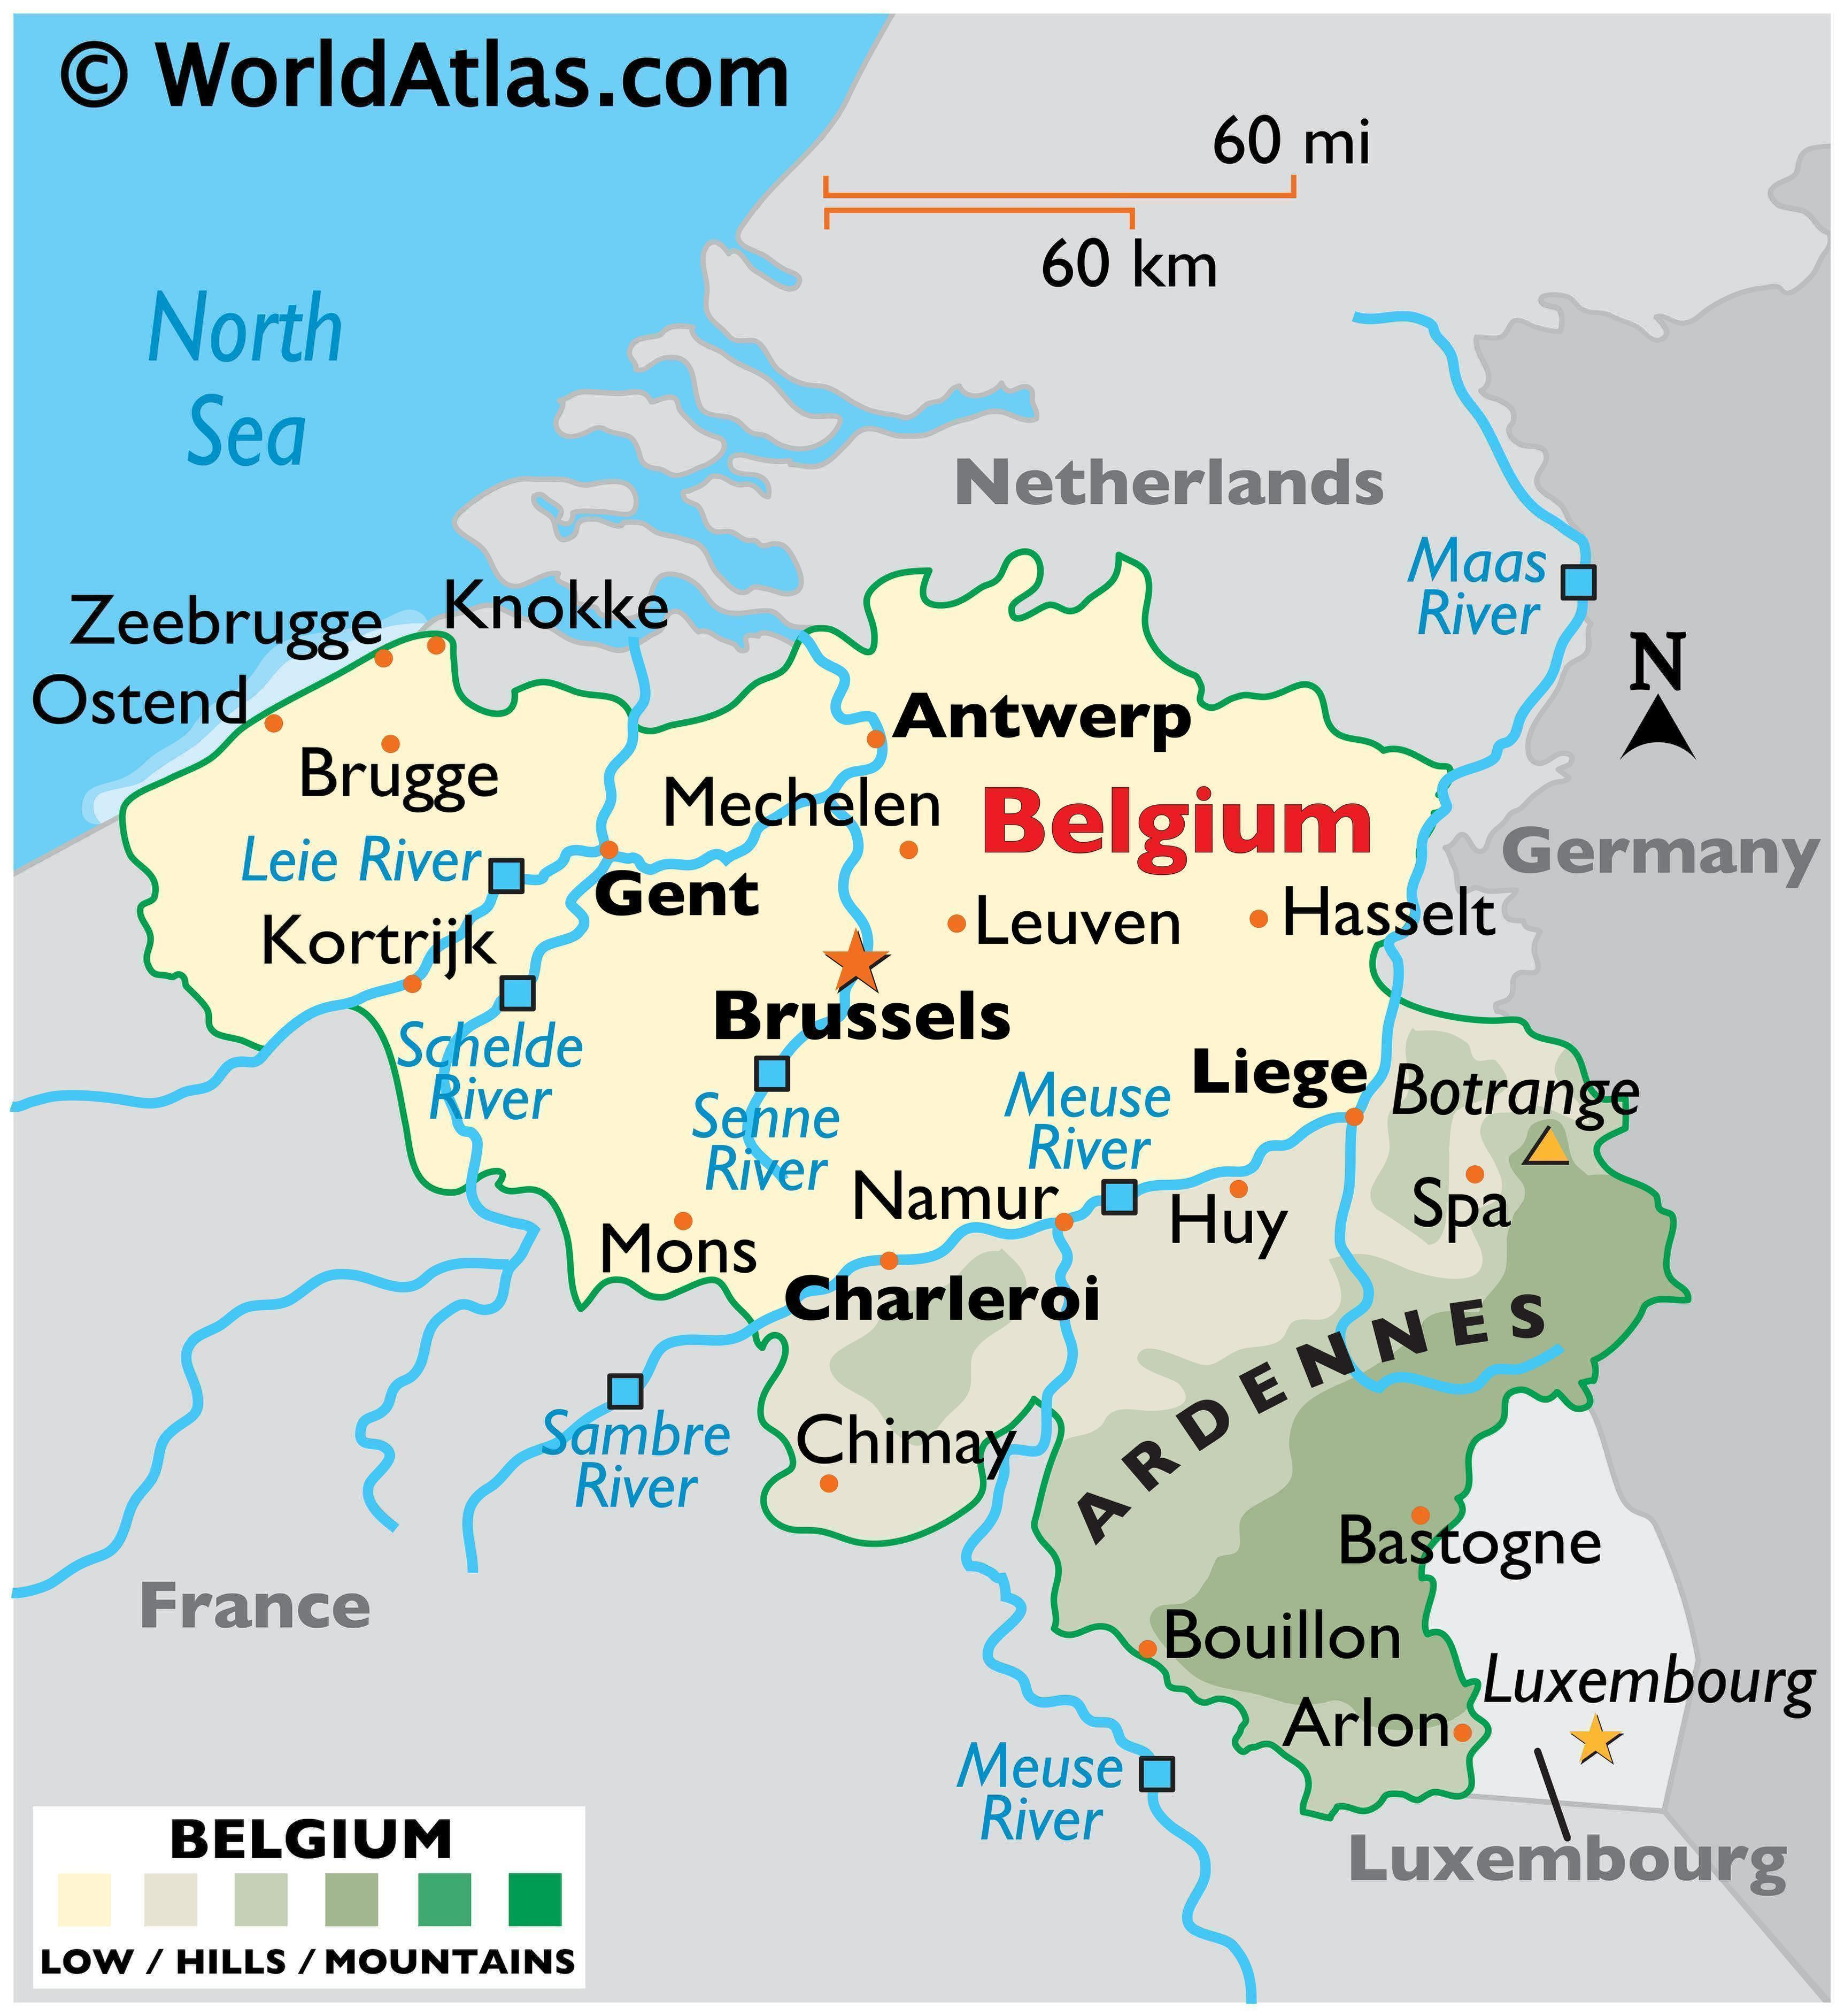 Physical Map of Belgium showing terrain, mountains, extreme points, islands, rivers, major cities, international boundaries, etc.